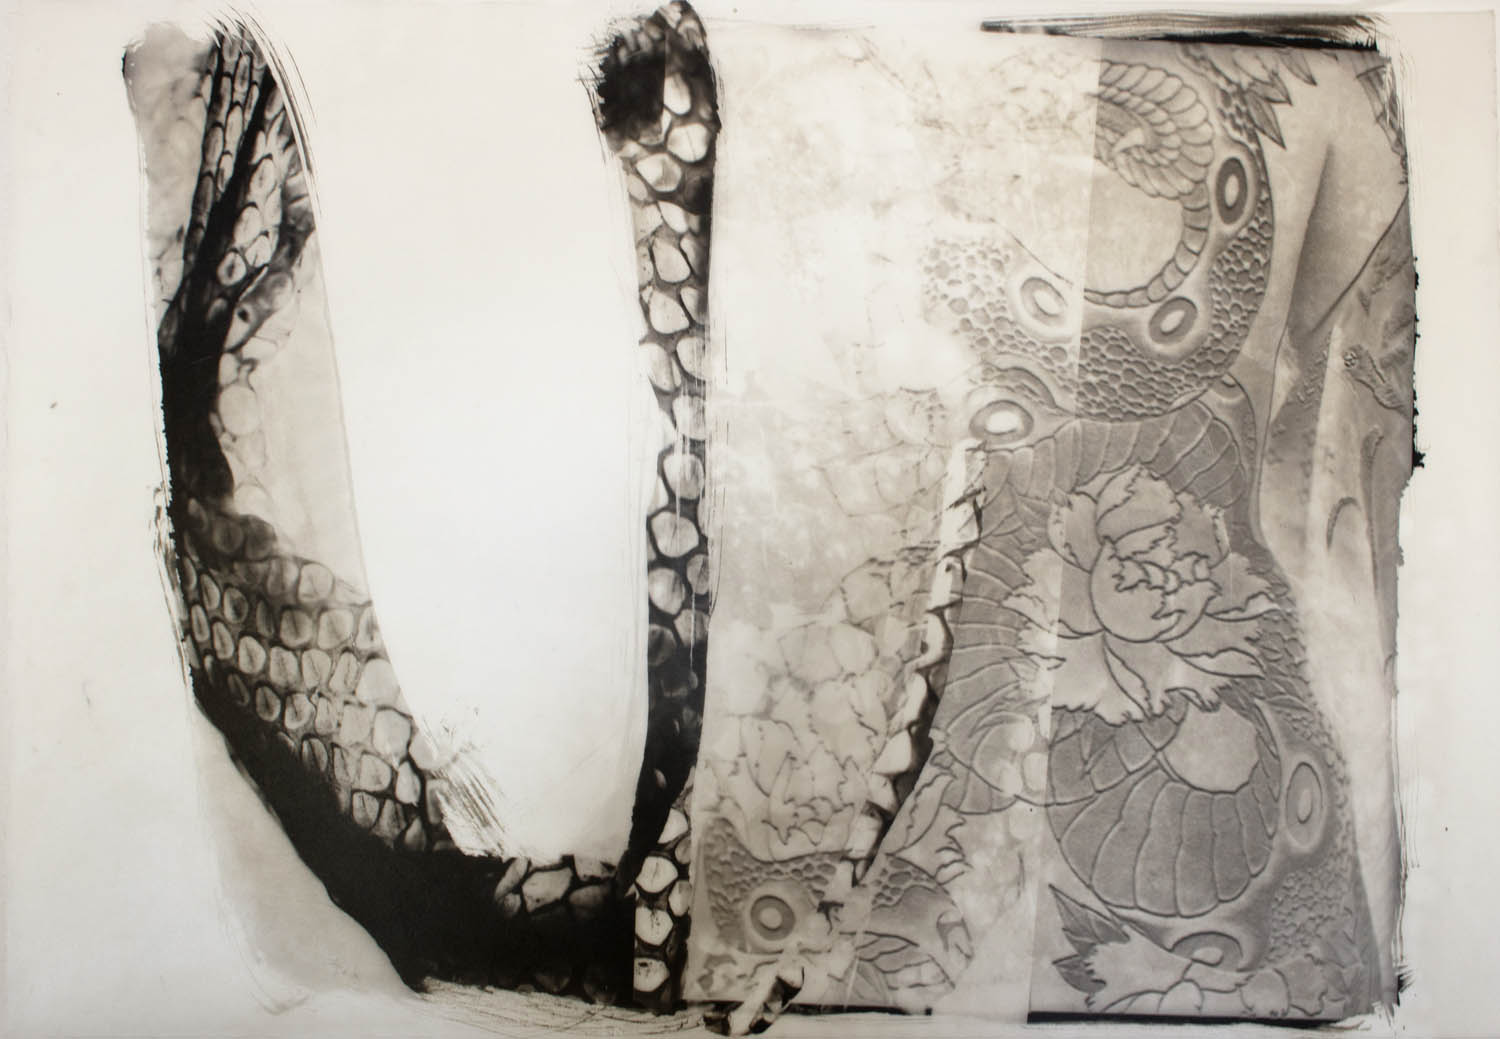 A shed snake skin with a woman who has a serpent tattoo on her back.